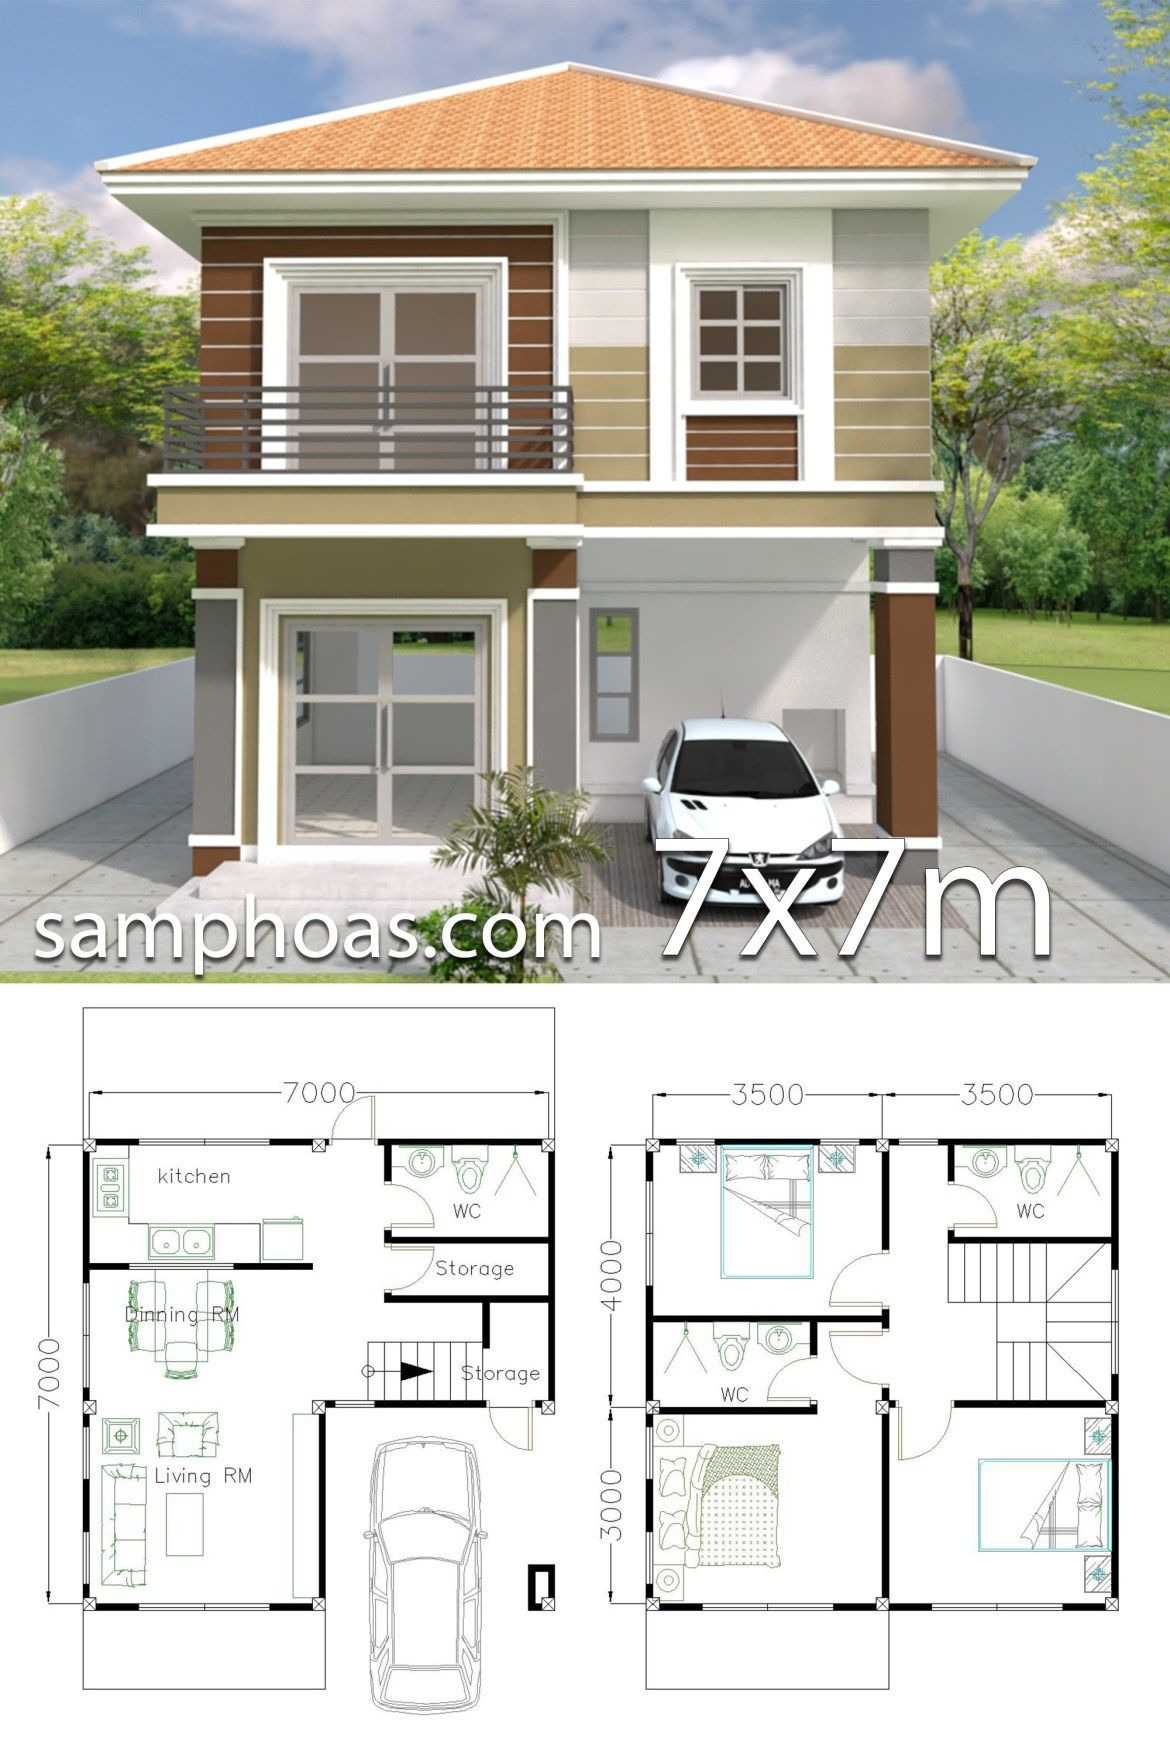 Cost Of Building A 3 Bedroom House Inspirational Home Design Plan 7x7m with 3 Bedrooms